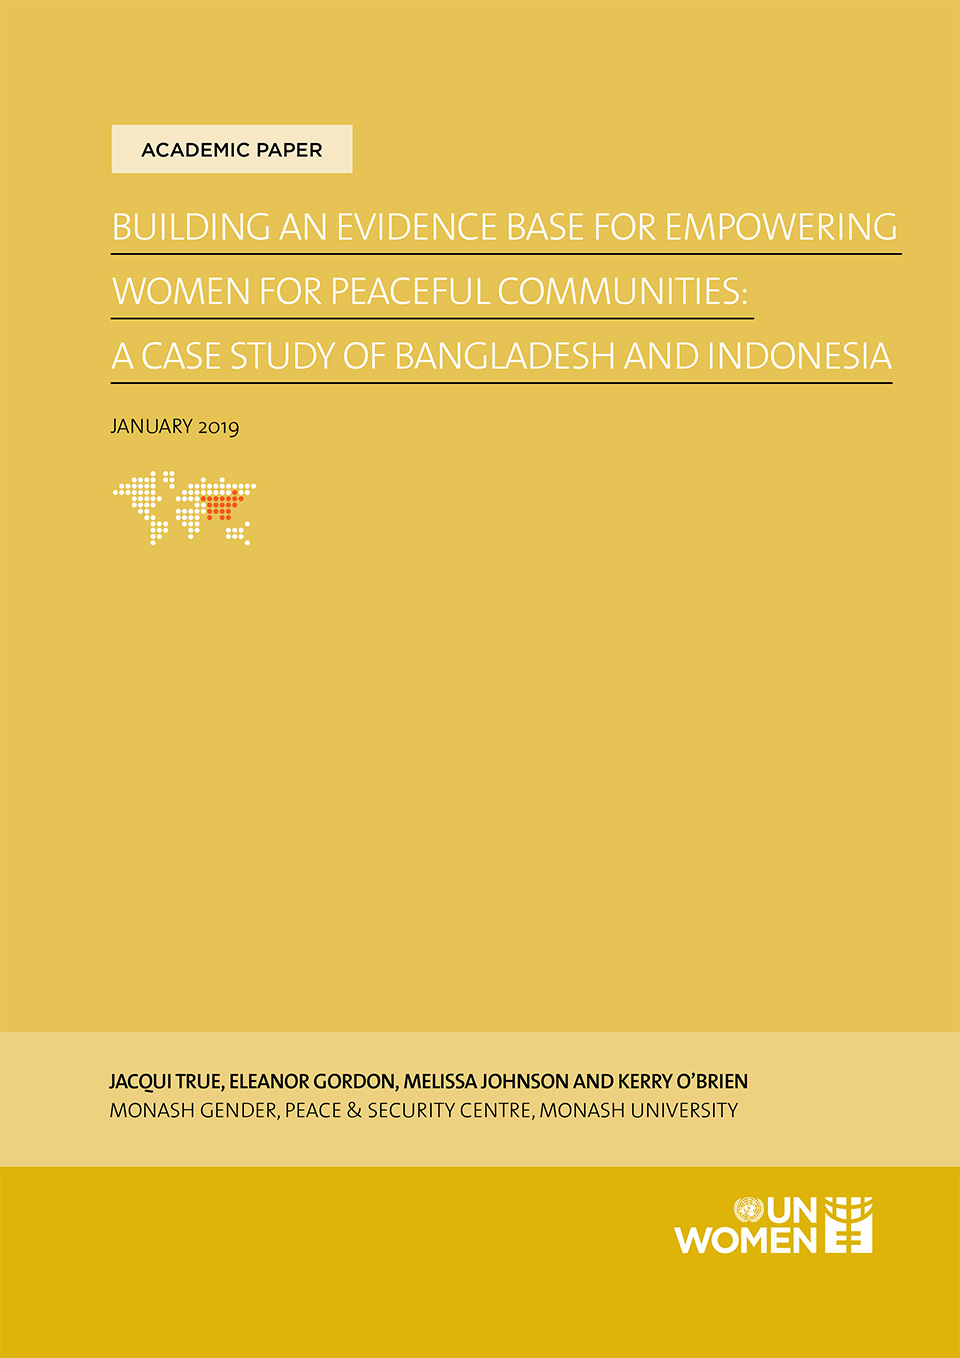 Building an Evidence Base for Empowering Women for Peaceful Communities:  A case study of Bangladesh and Indonesia